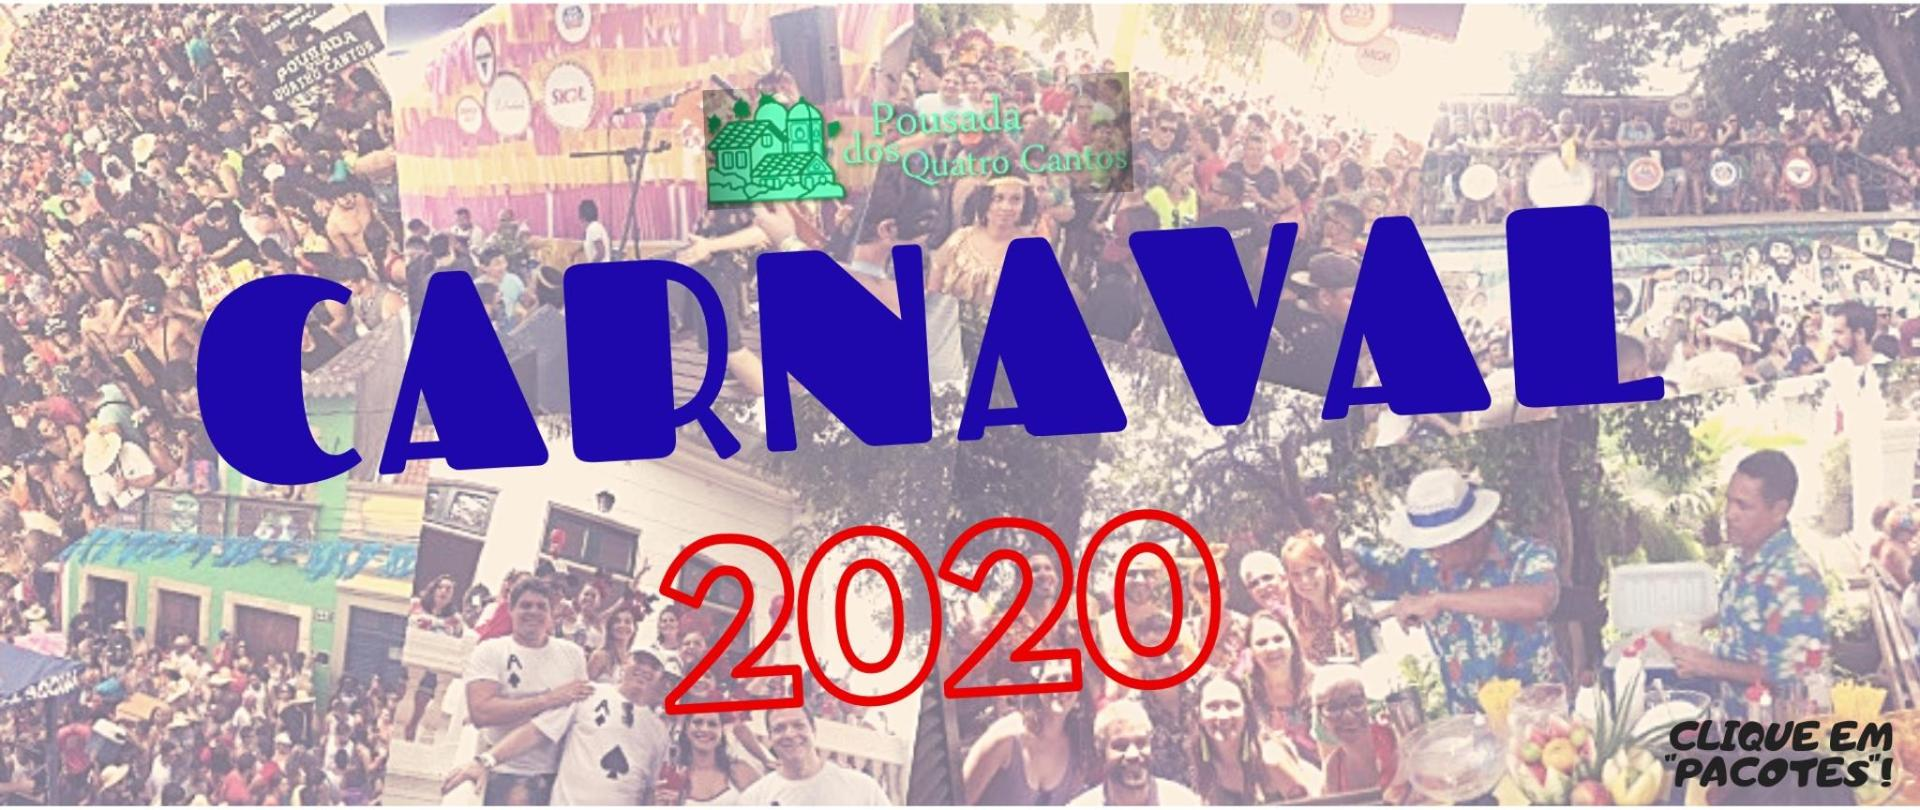 CARNAVAL 2020 SITE FRONT.jpg